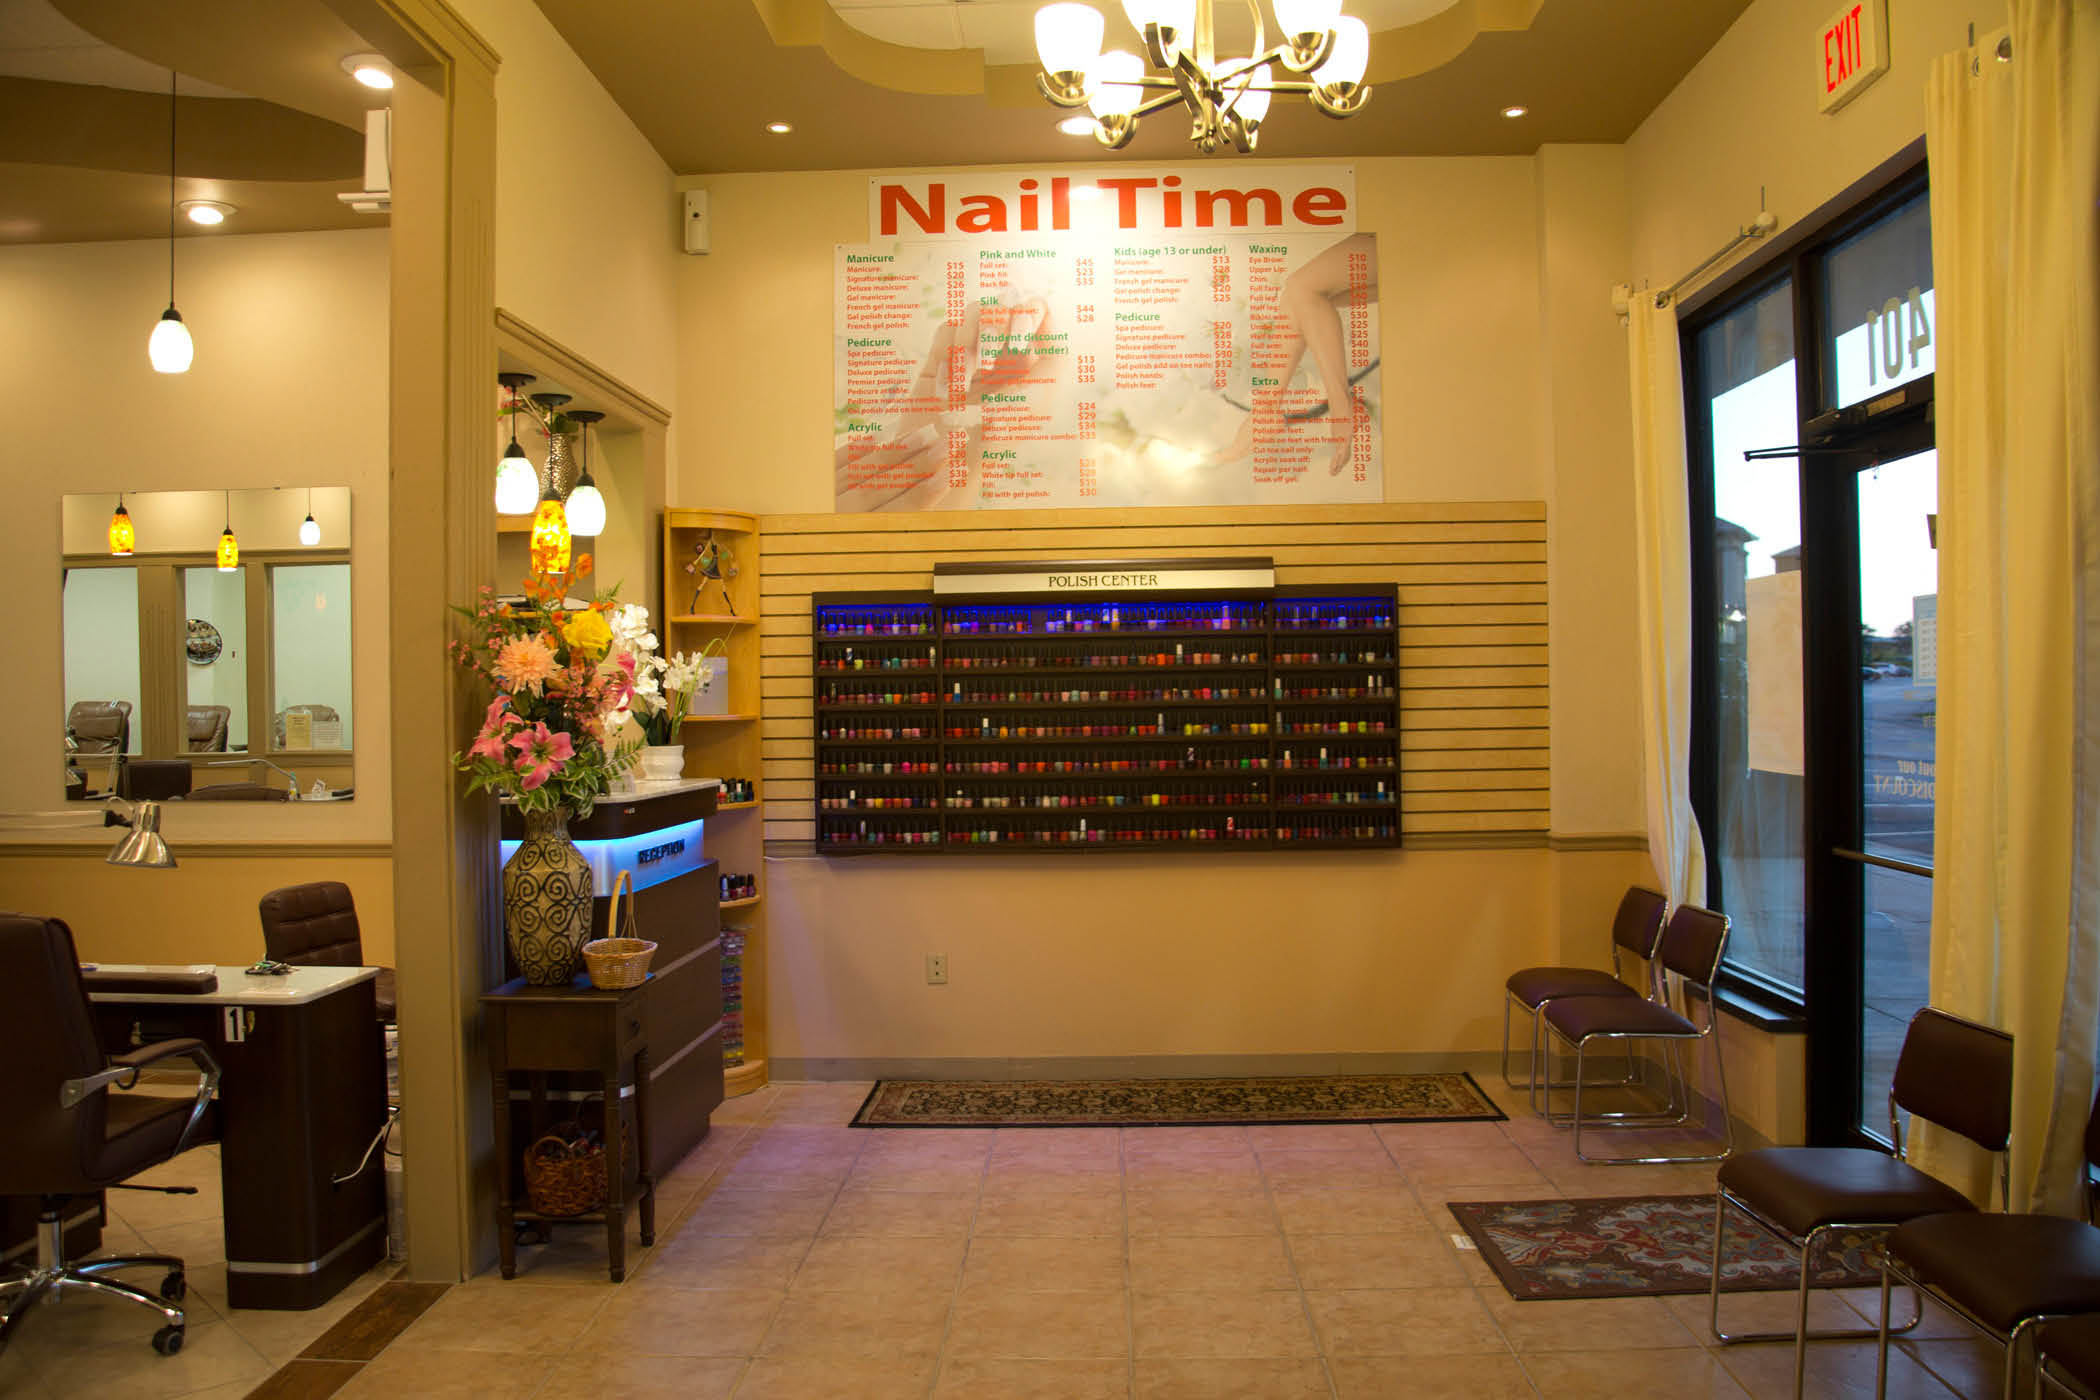 nail time, nail time & co, nail time salon, nail time overland park, manicures overland park, pedicures overland park, nail services overland park, waxing overland park, mani pedi johnson county, nail salons kansas city, waxing services kansas city